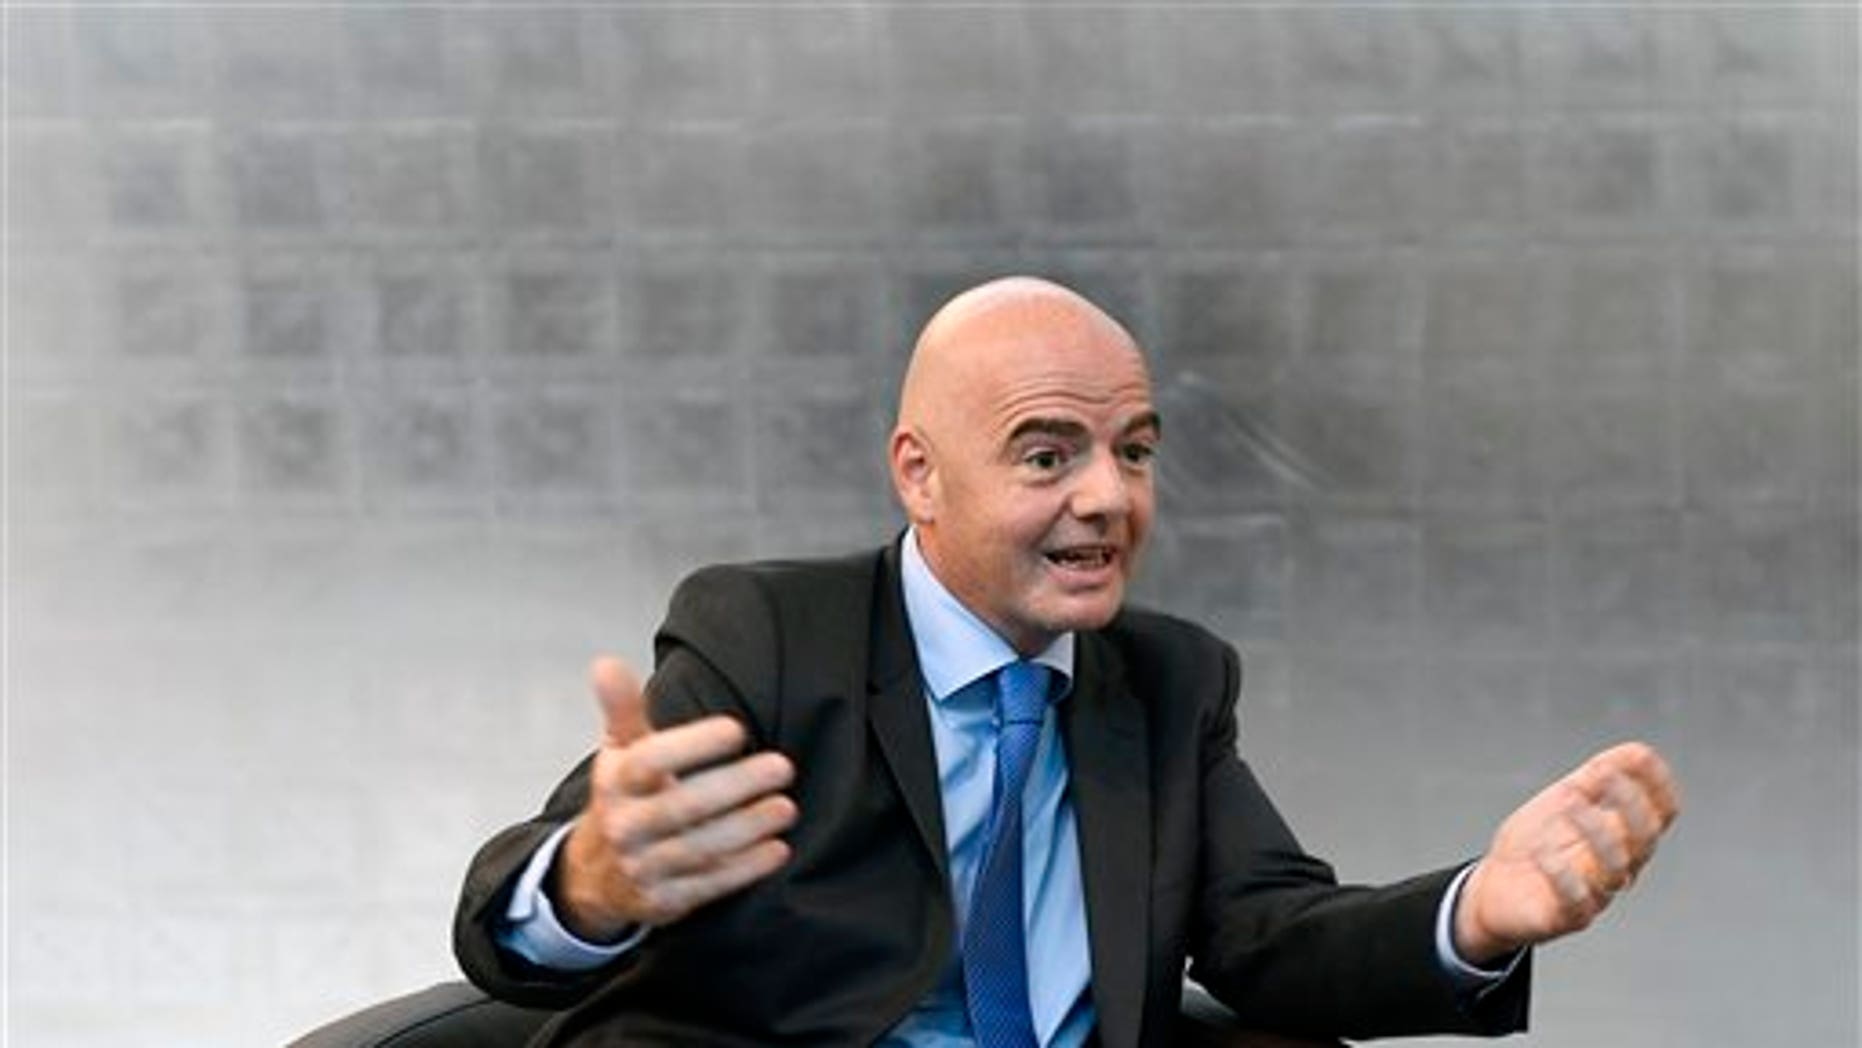 """FIFA President Gianni Infantino speaks during an interview on the occasion of the """"World Summit on Ethics and Leadership in Sports"""" at the Home of FIFA in Zurich. Switzerland, Friday, Sept. 16,  2016. (Walter Bieri/Keystone via AP)"""